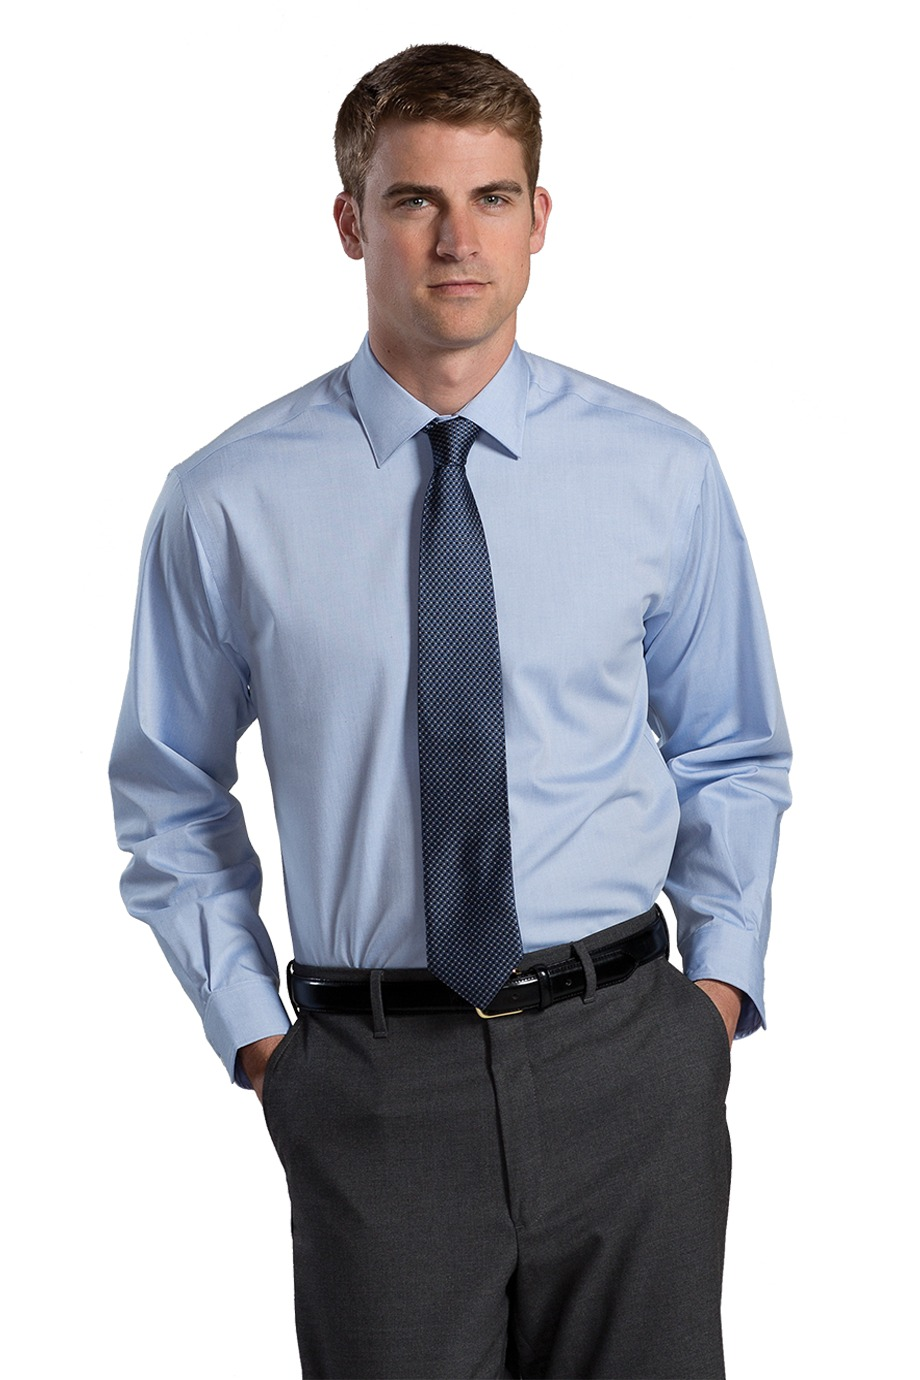 Edwards Garment 1033 - Spread Collar Dress Shirt $19.38 - Men's ...